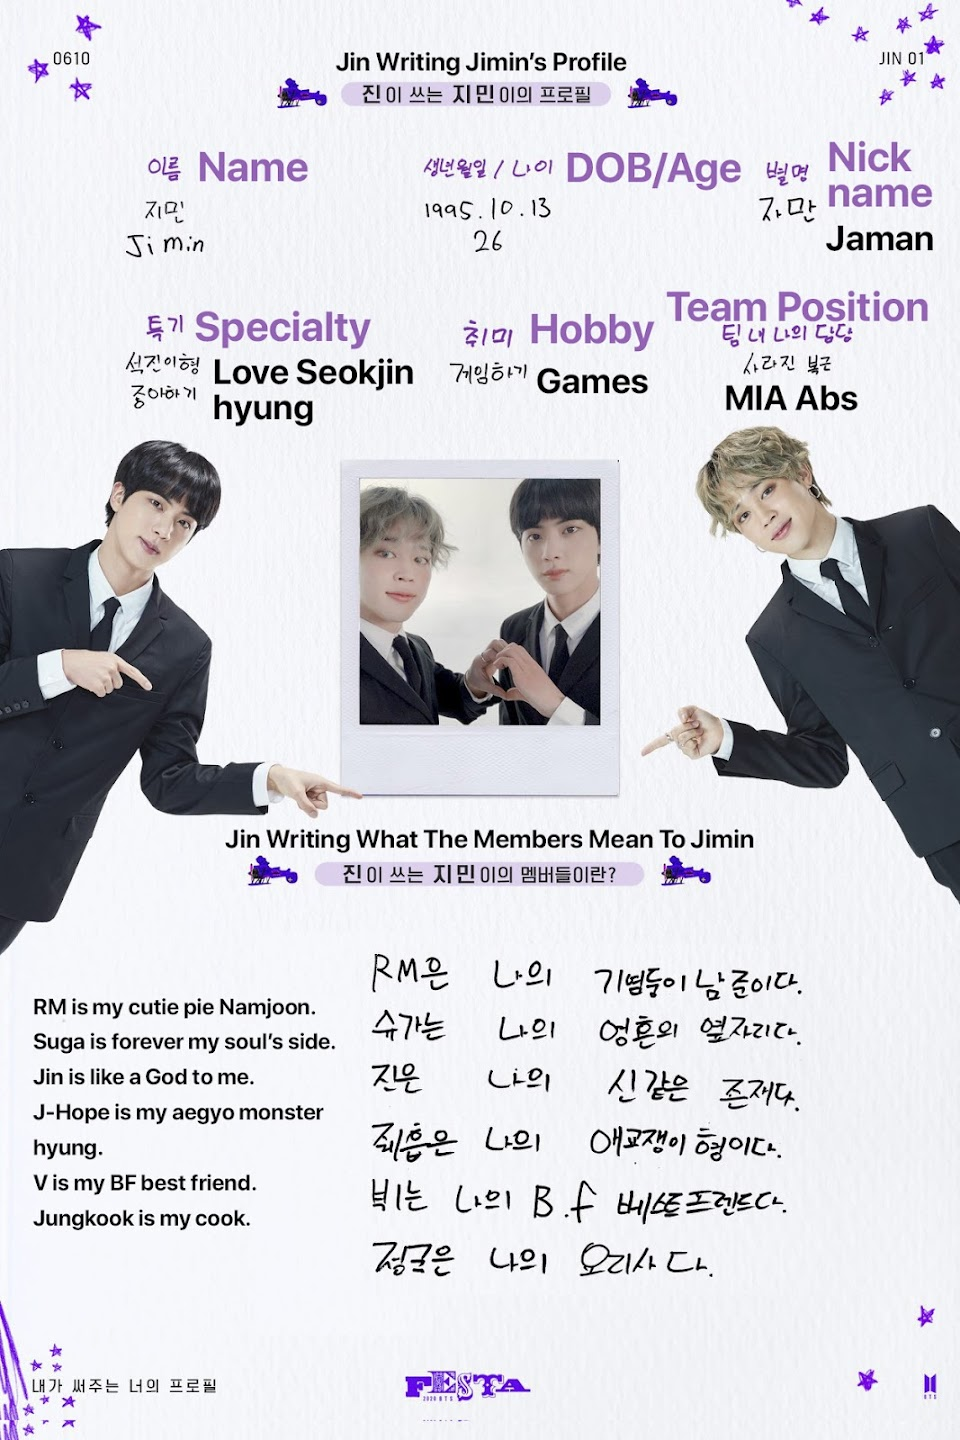 bts jin jimin profile 1 copy